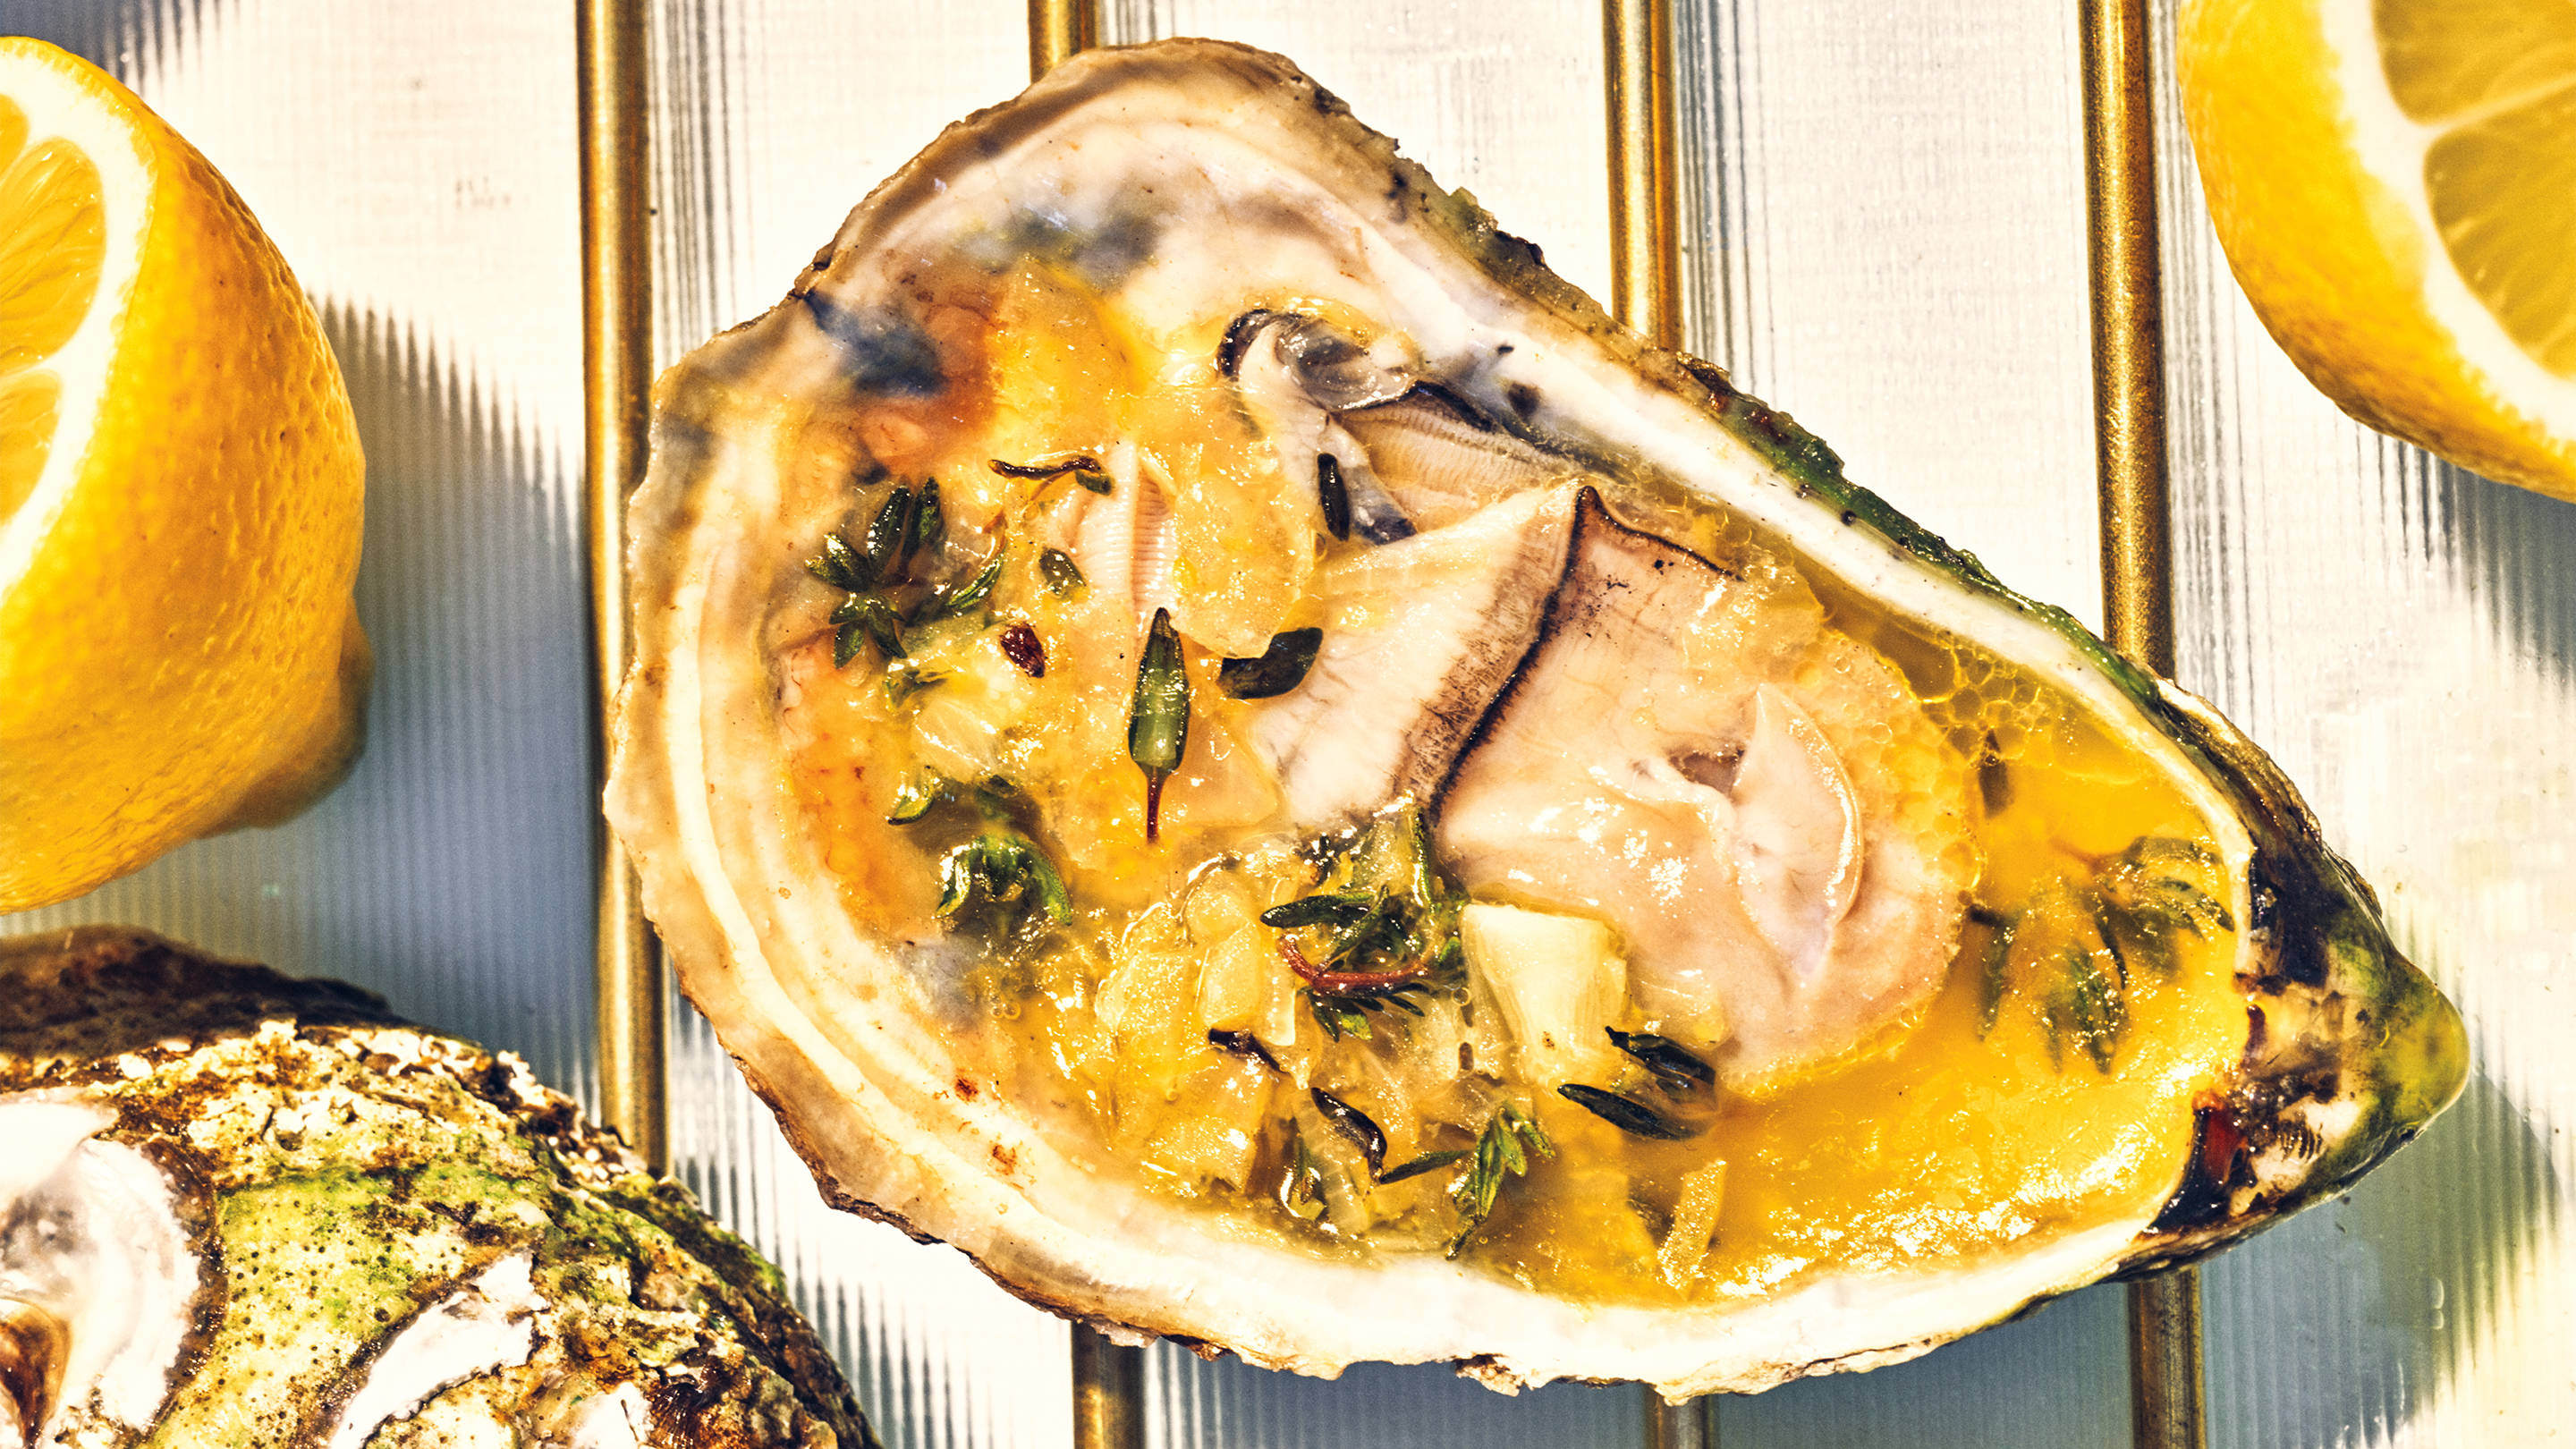 How to Grill Oysters Photo by Grant Cornett